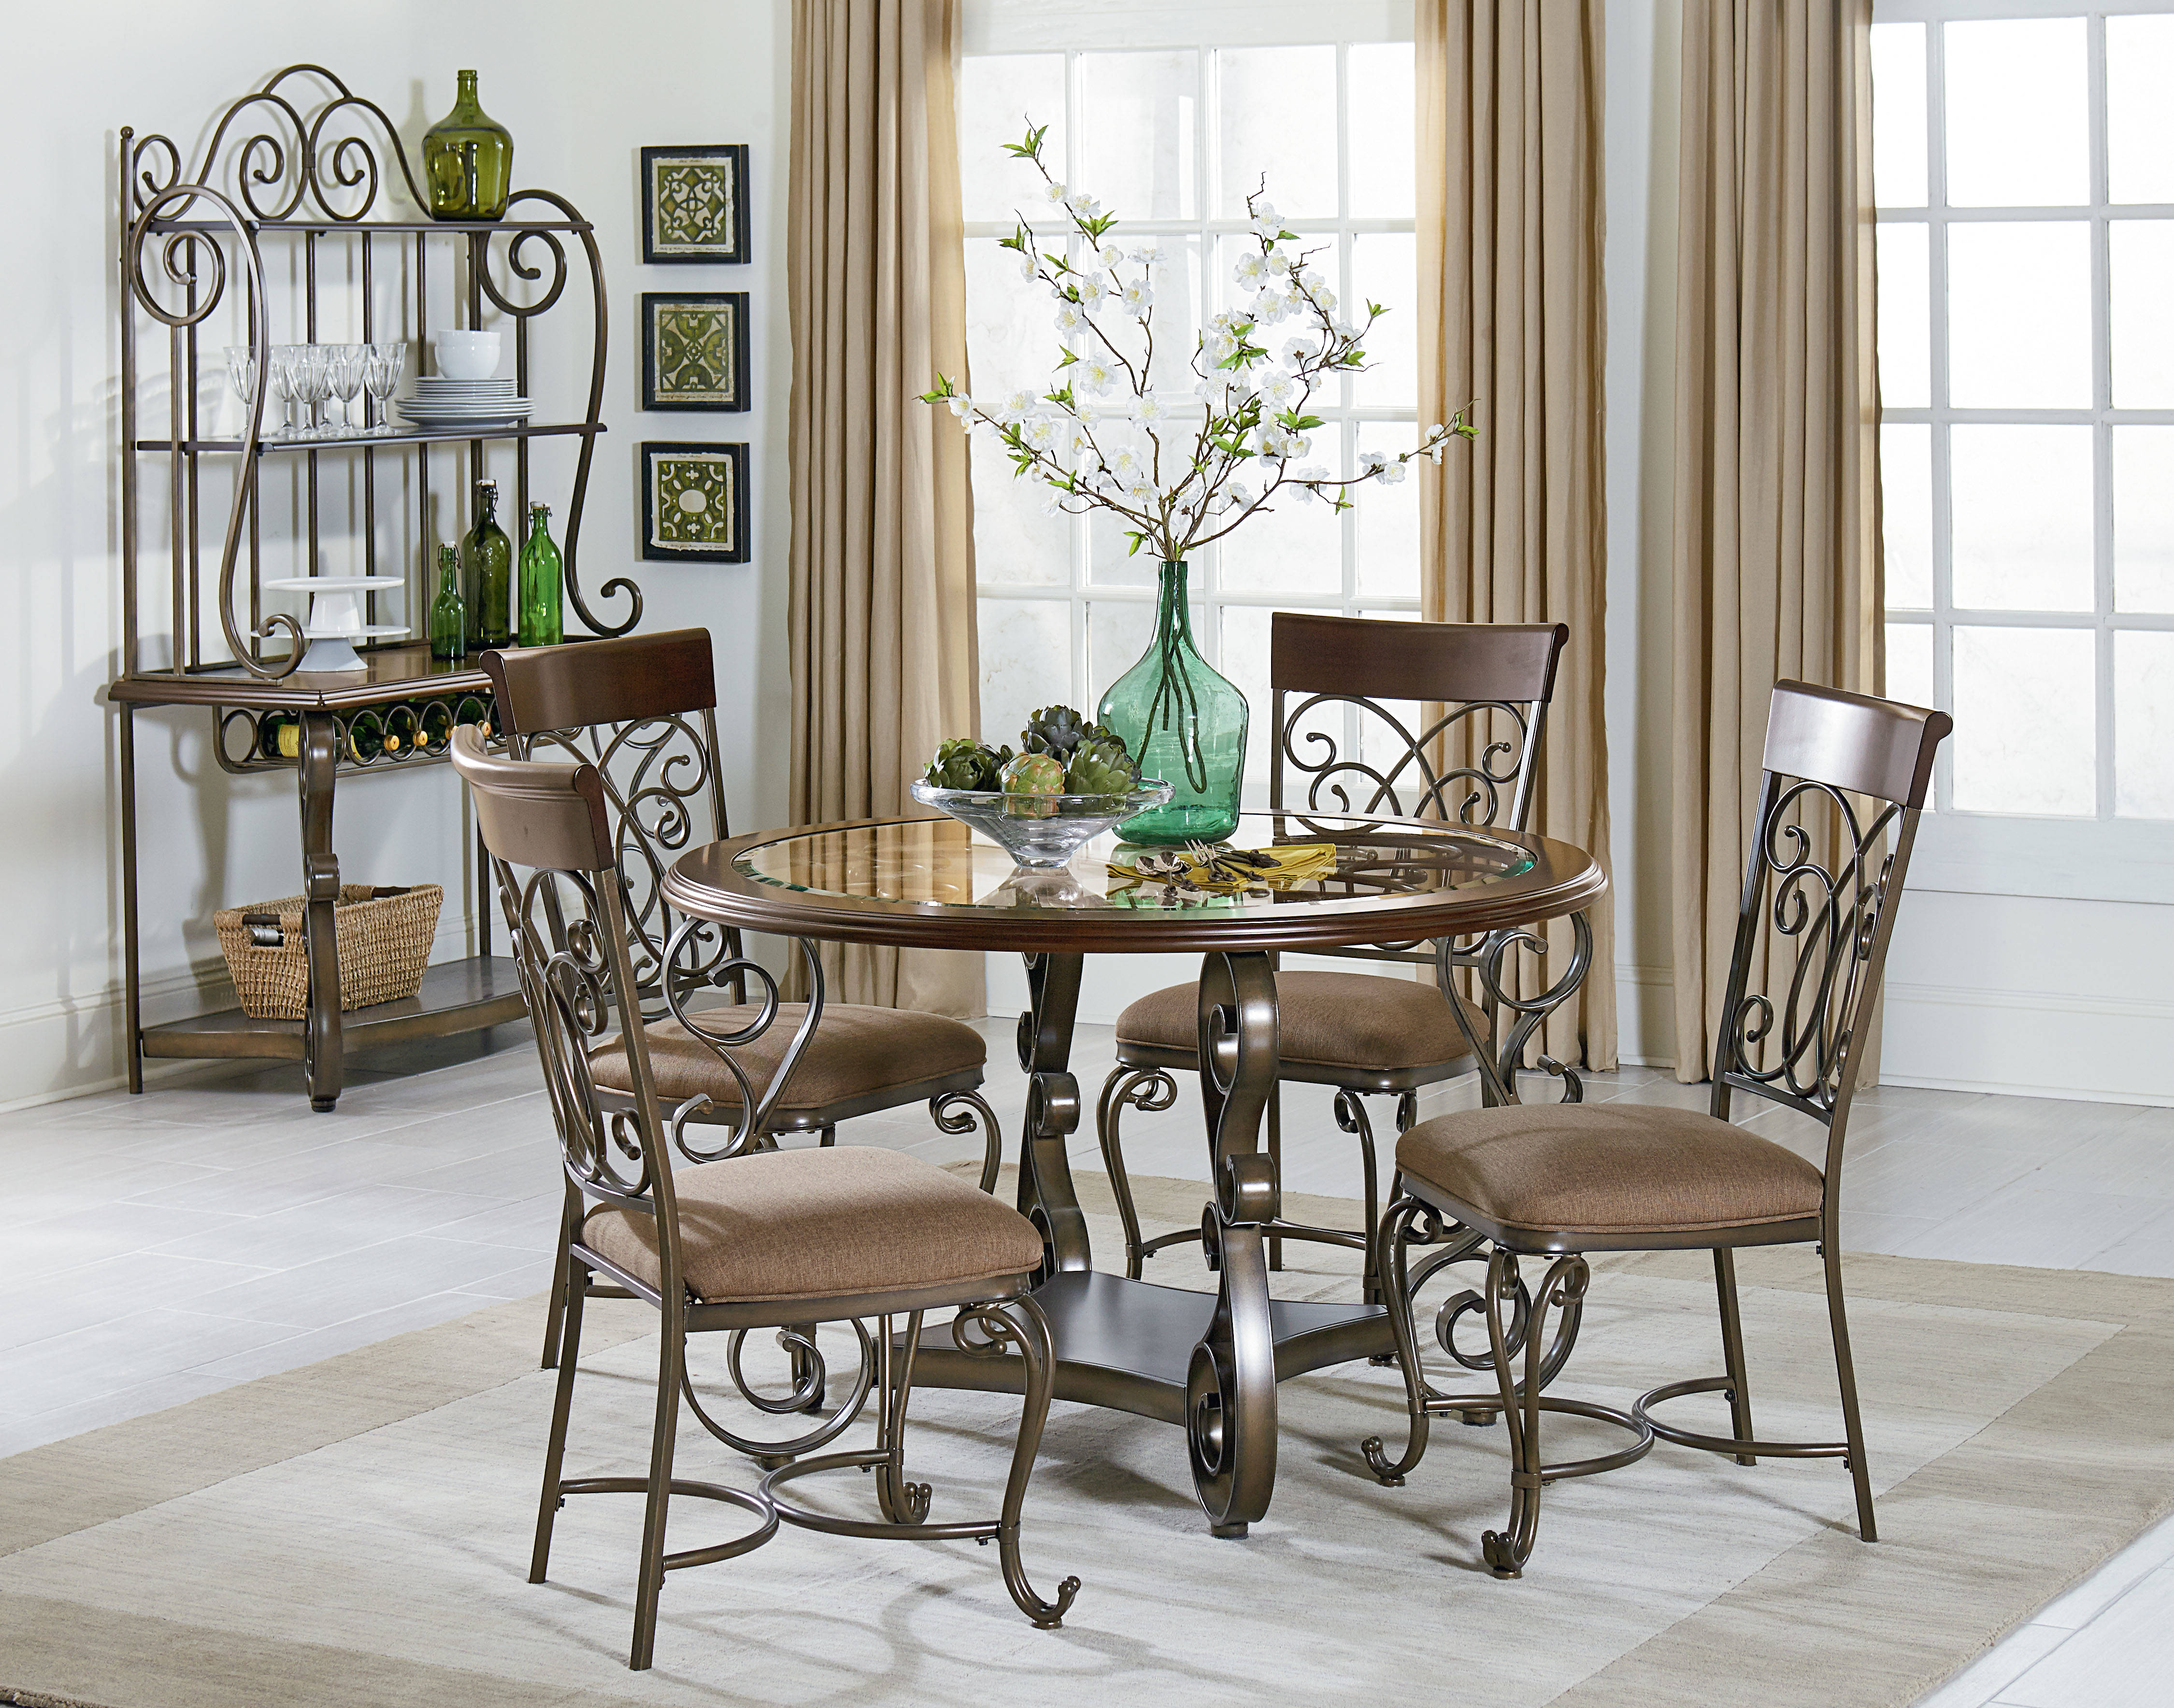 Standard Furniture Bombay Brown Cherry 5pc Dining Room Set The